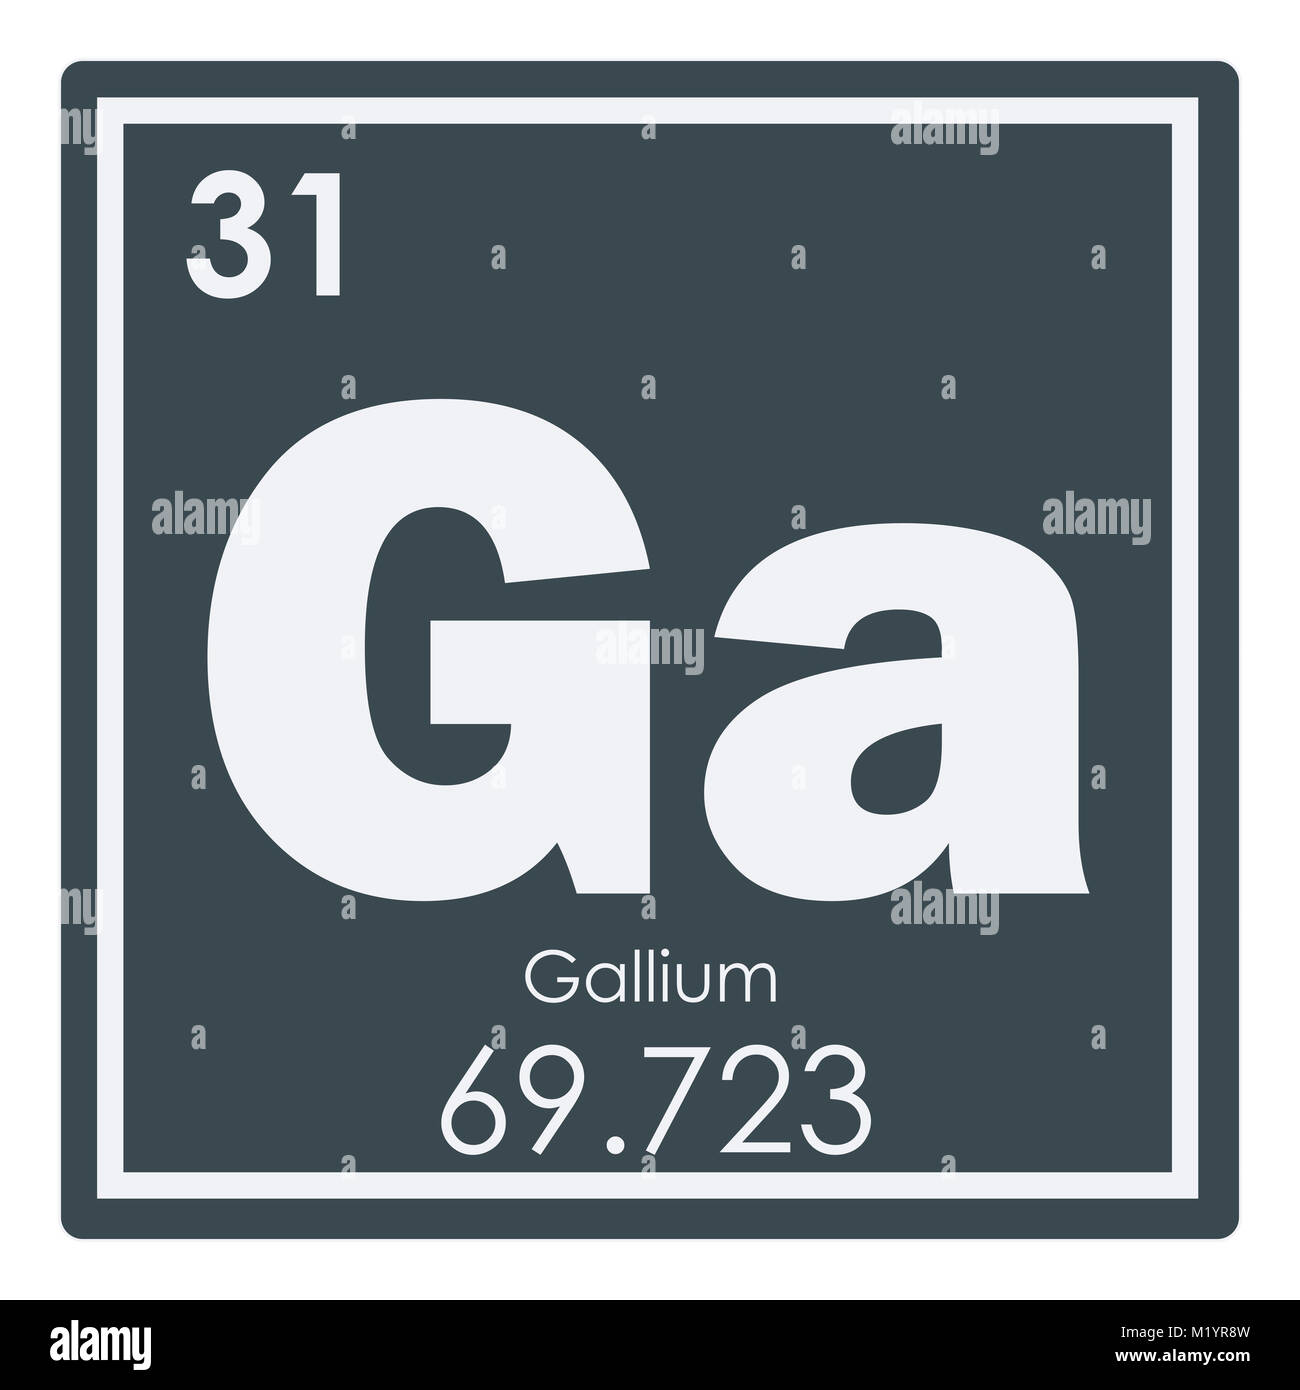 Gallium chemical element periodic table science symbol stock photo gallium chemical element periodic table science symbol urtaz Images